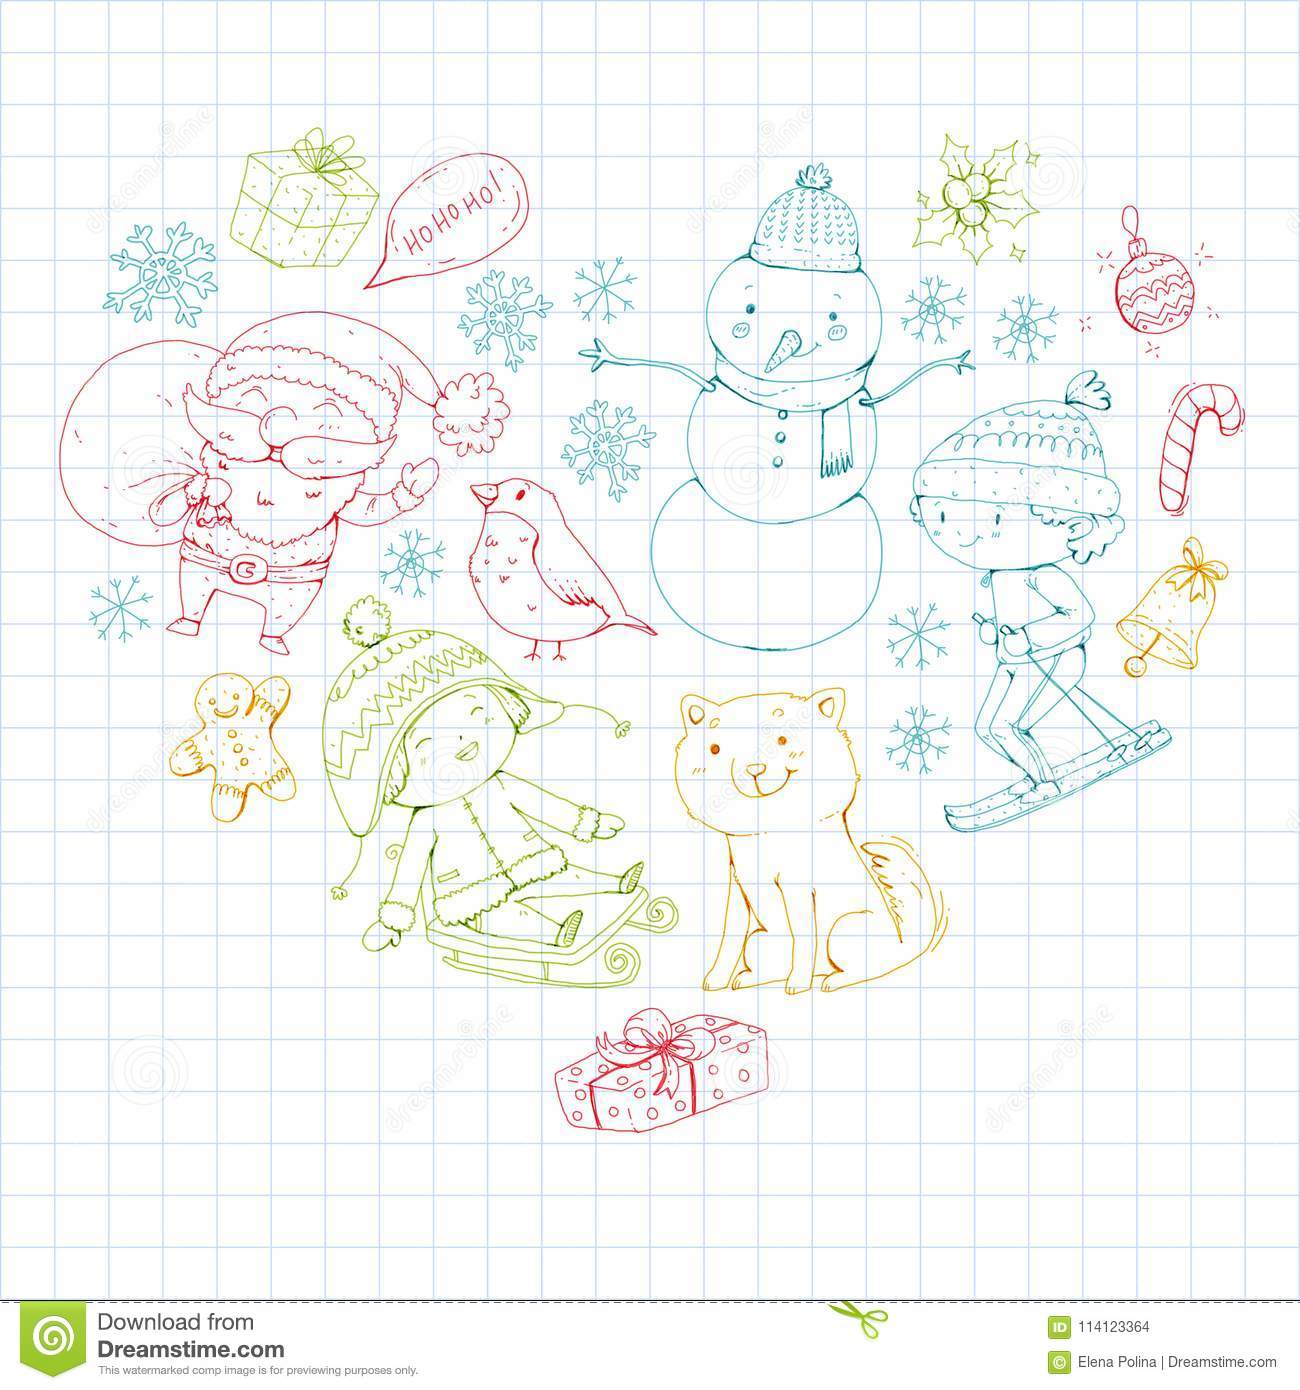 Christmas Celebration Images For Drawing.Merry Christmas Celebration With Children Kids Drawing